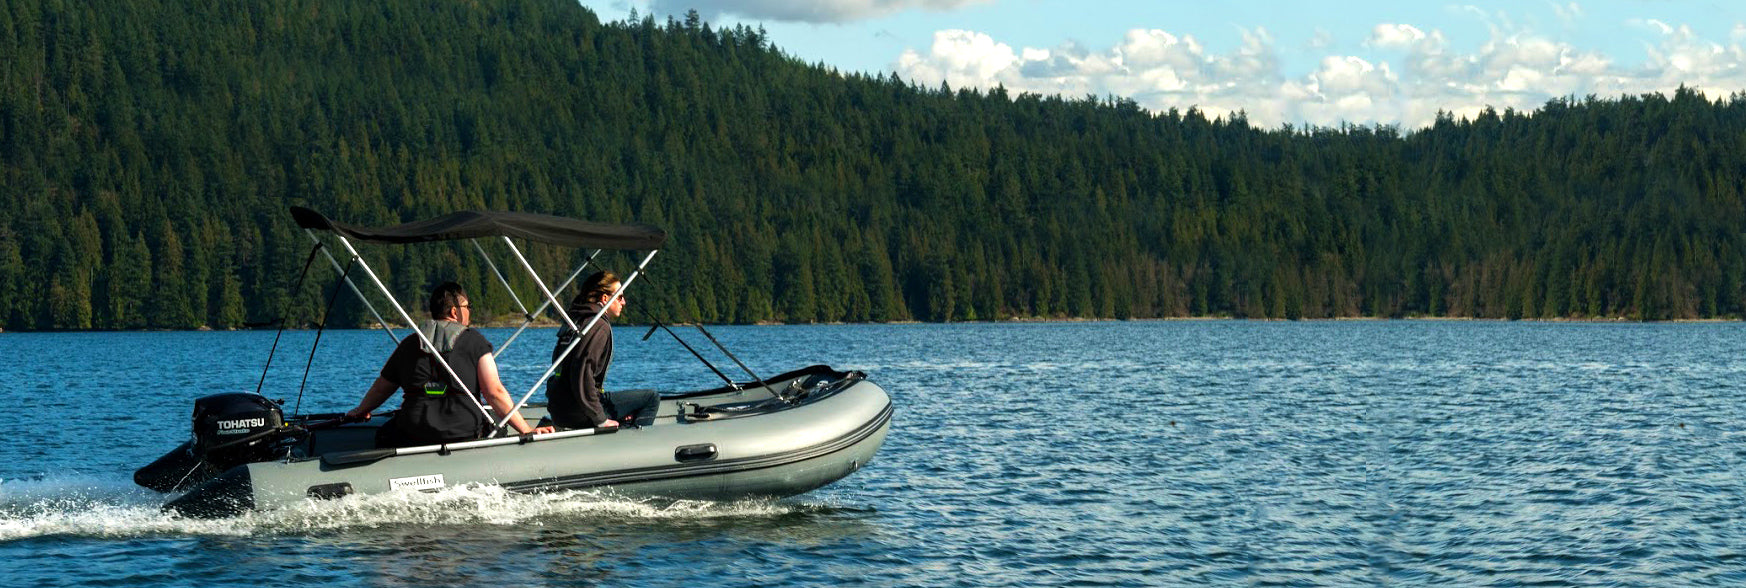 Ocean Fishing Inflatable Boat